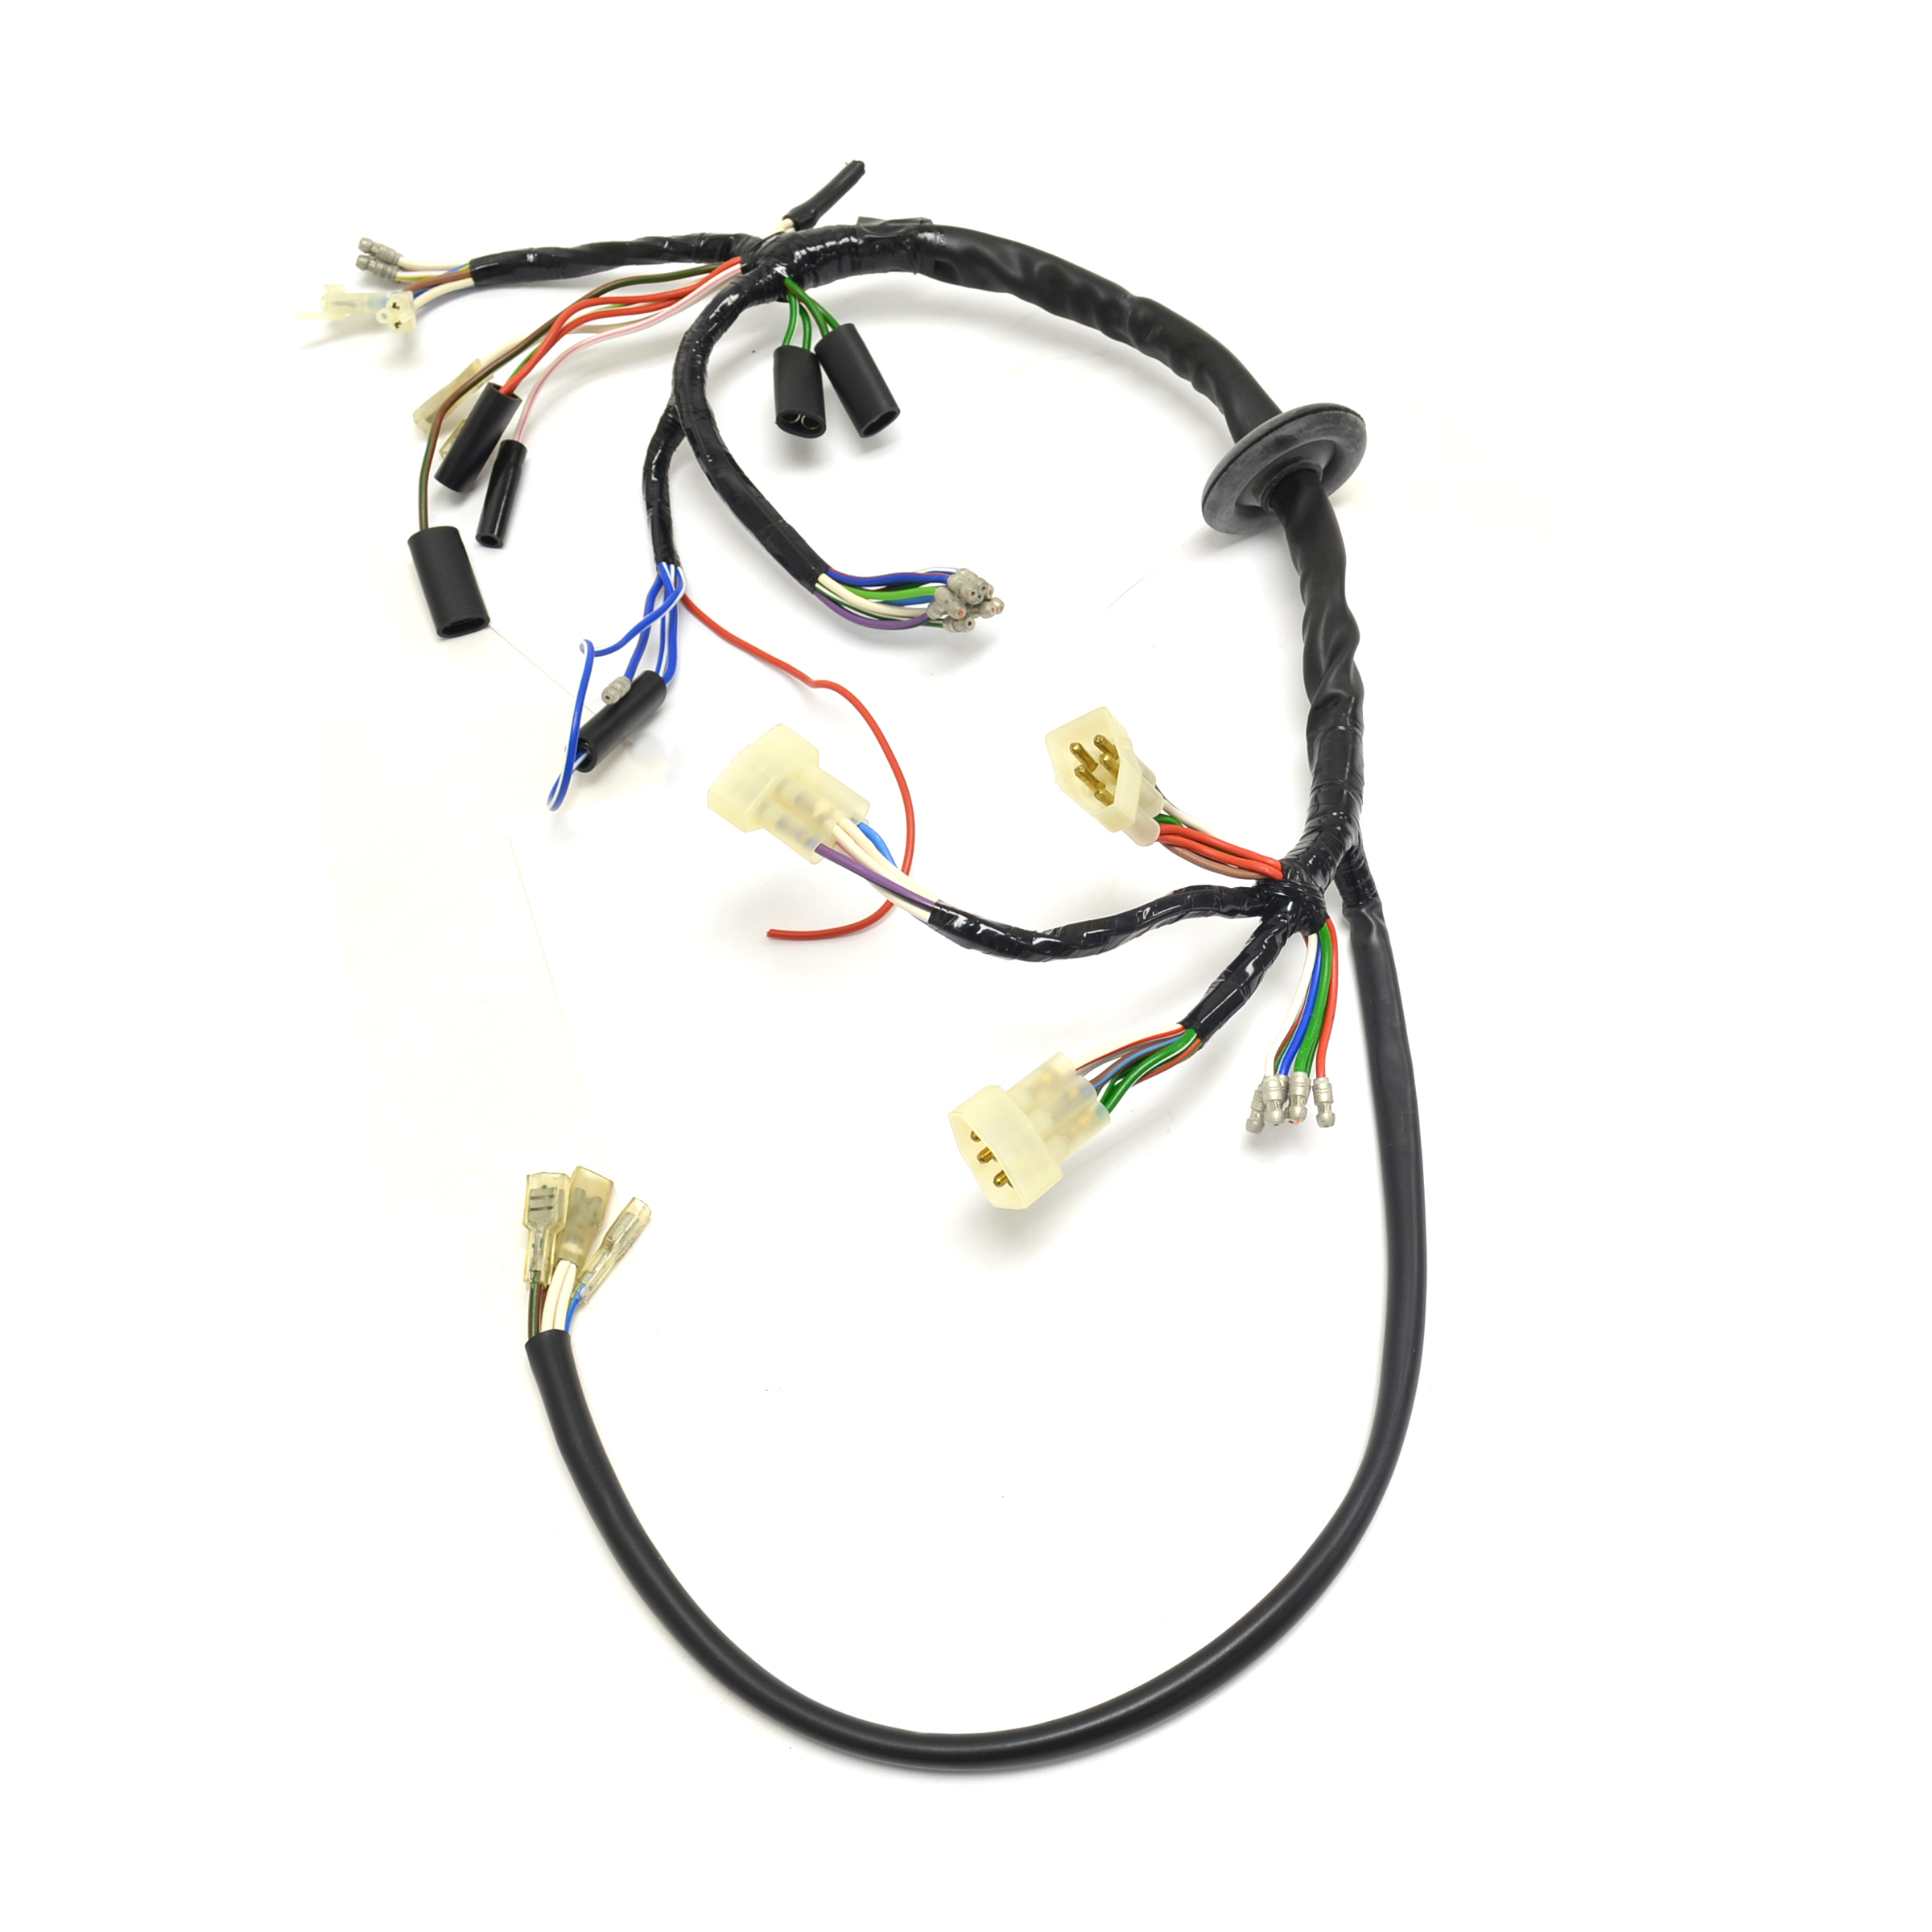 Wiring Harness Norton Commando Wrapping Auto Electrical Diagram 1975 77 Mkiii Headlight